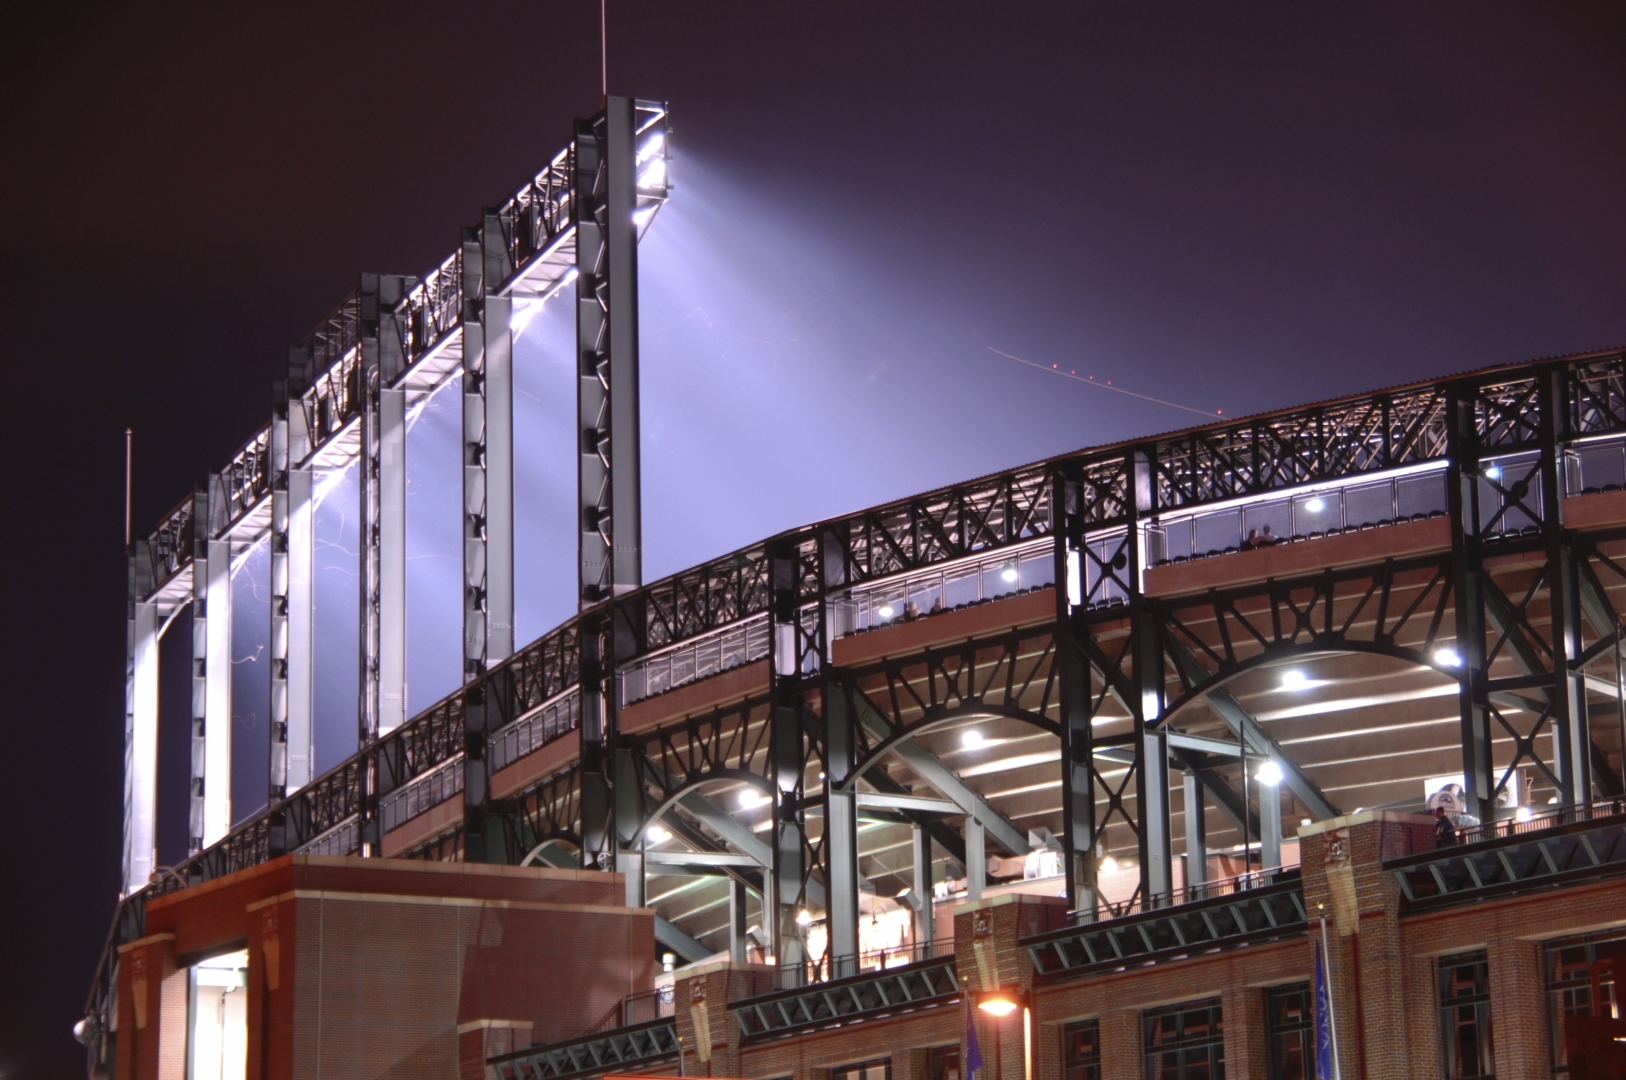 outdoor stadium lights at night